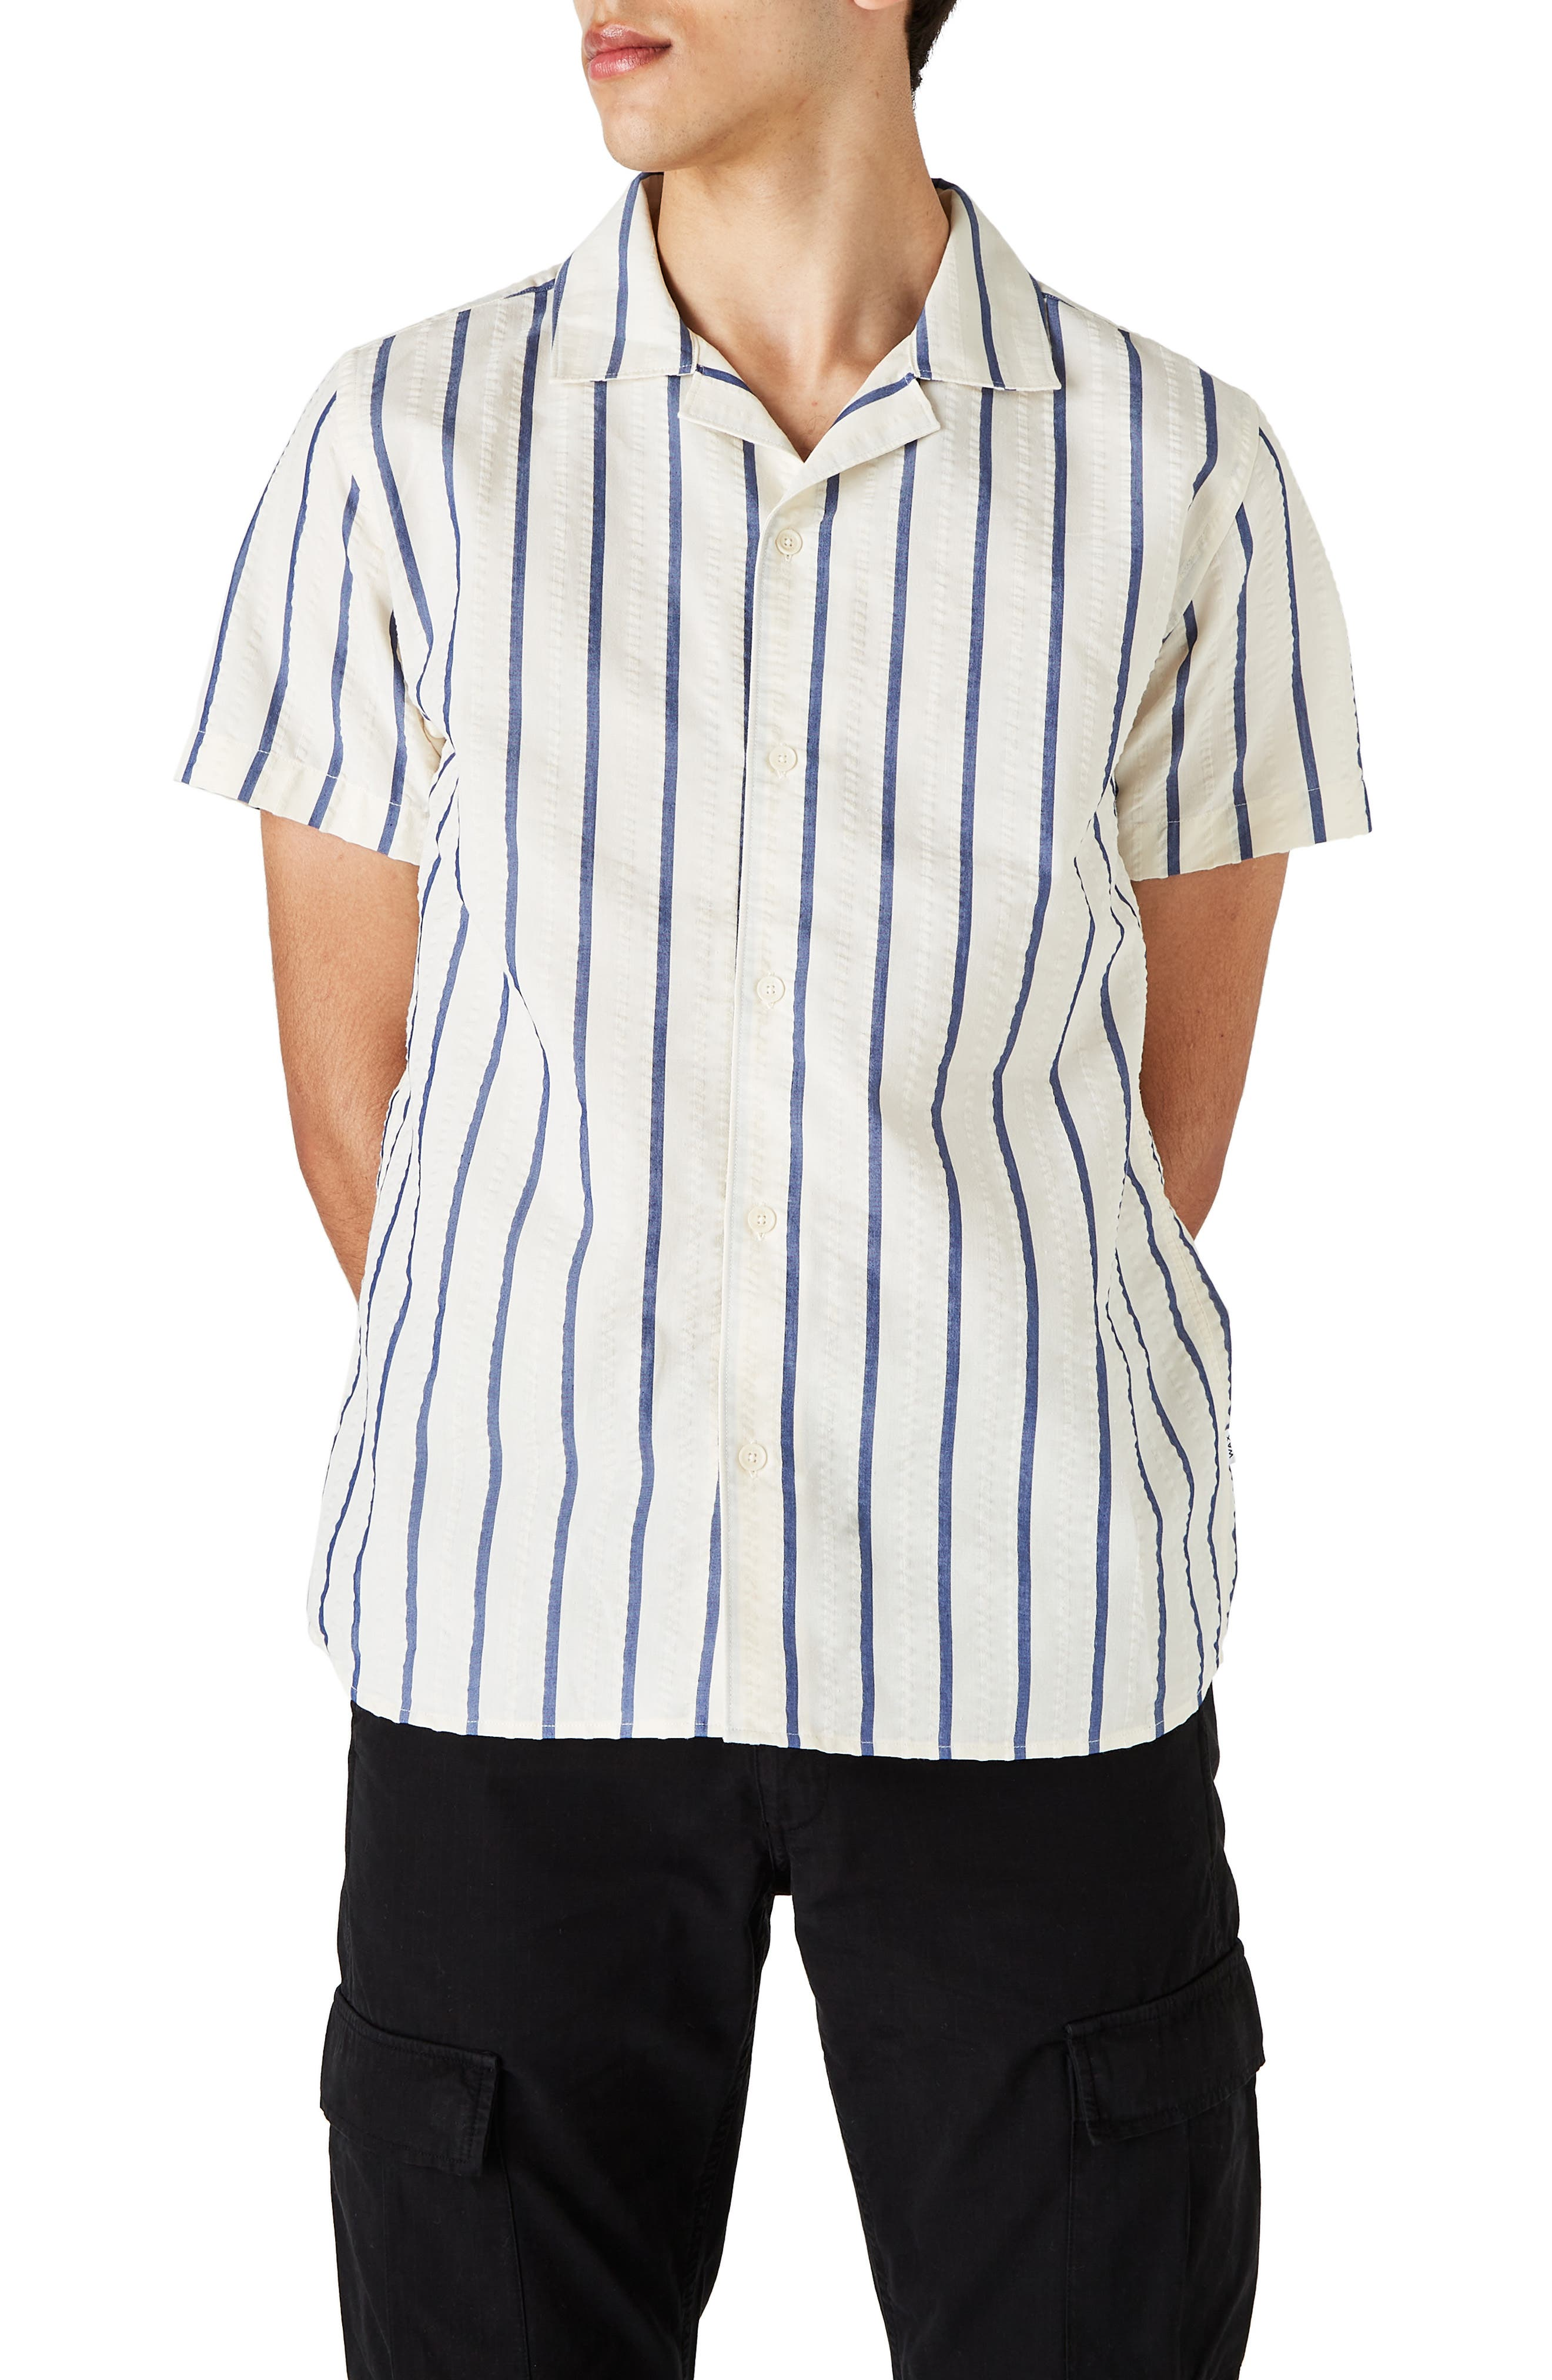 Woven Open V Neck Ladies Bowling Blouse White Short sleeves  Sports